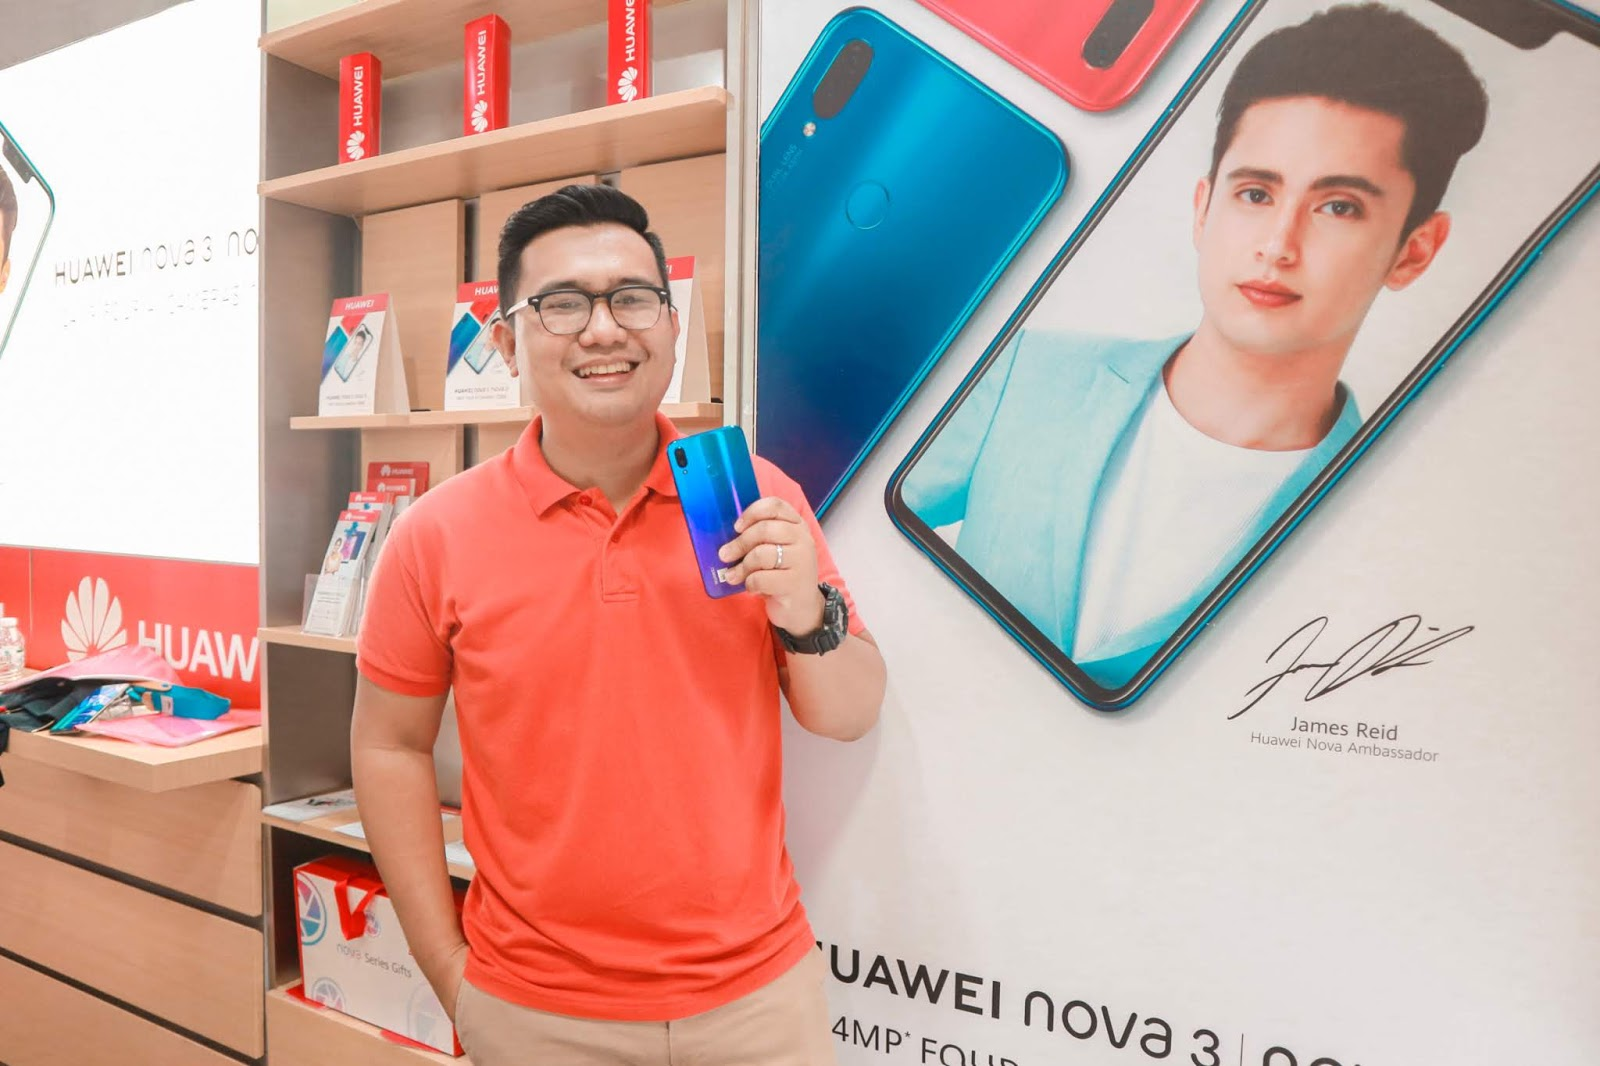 TECH REVIEW: Huawei Nova 3i